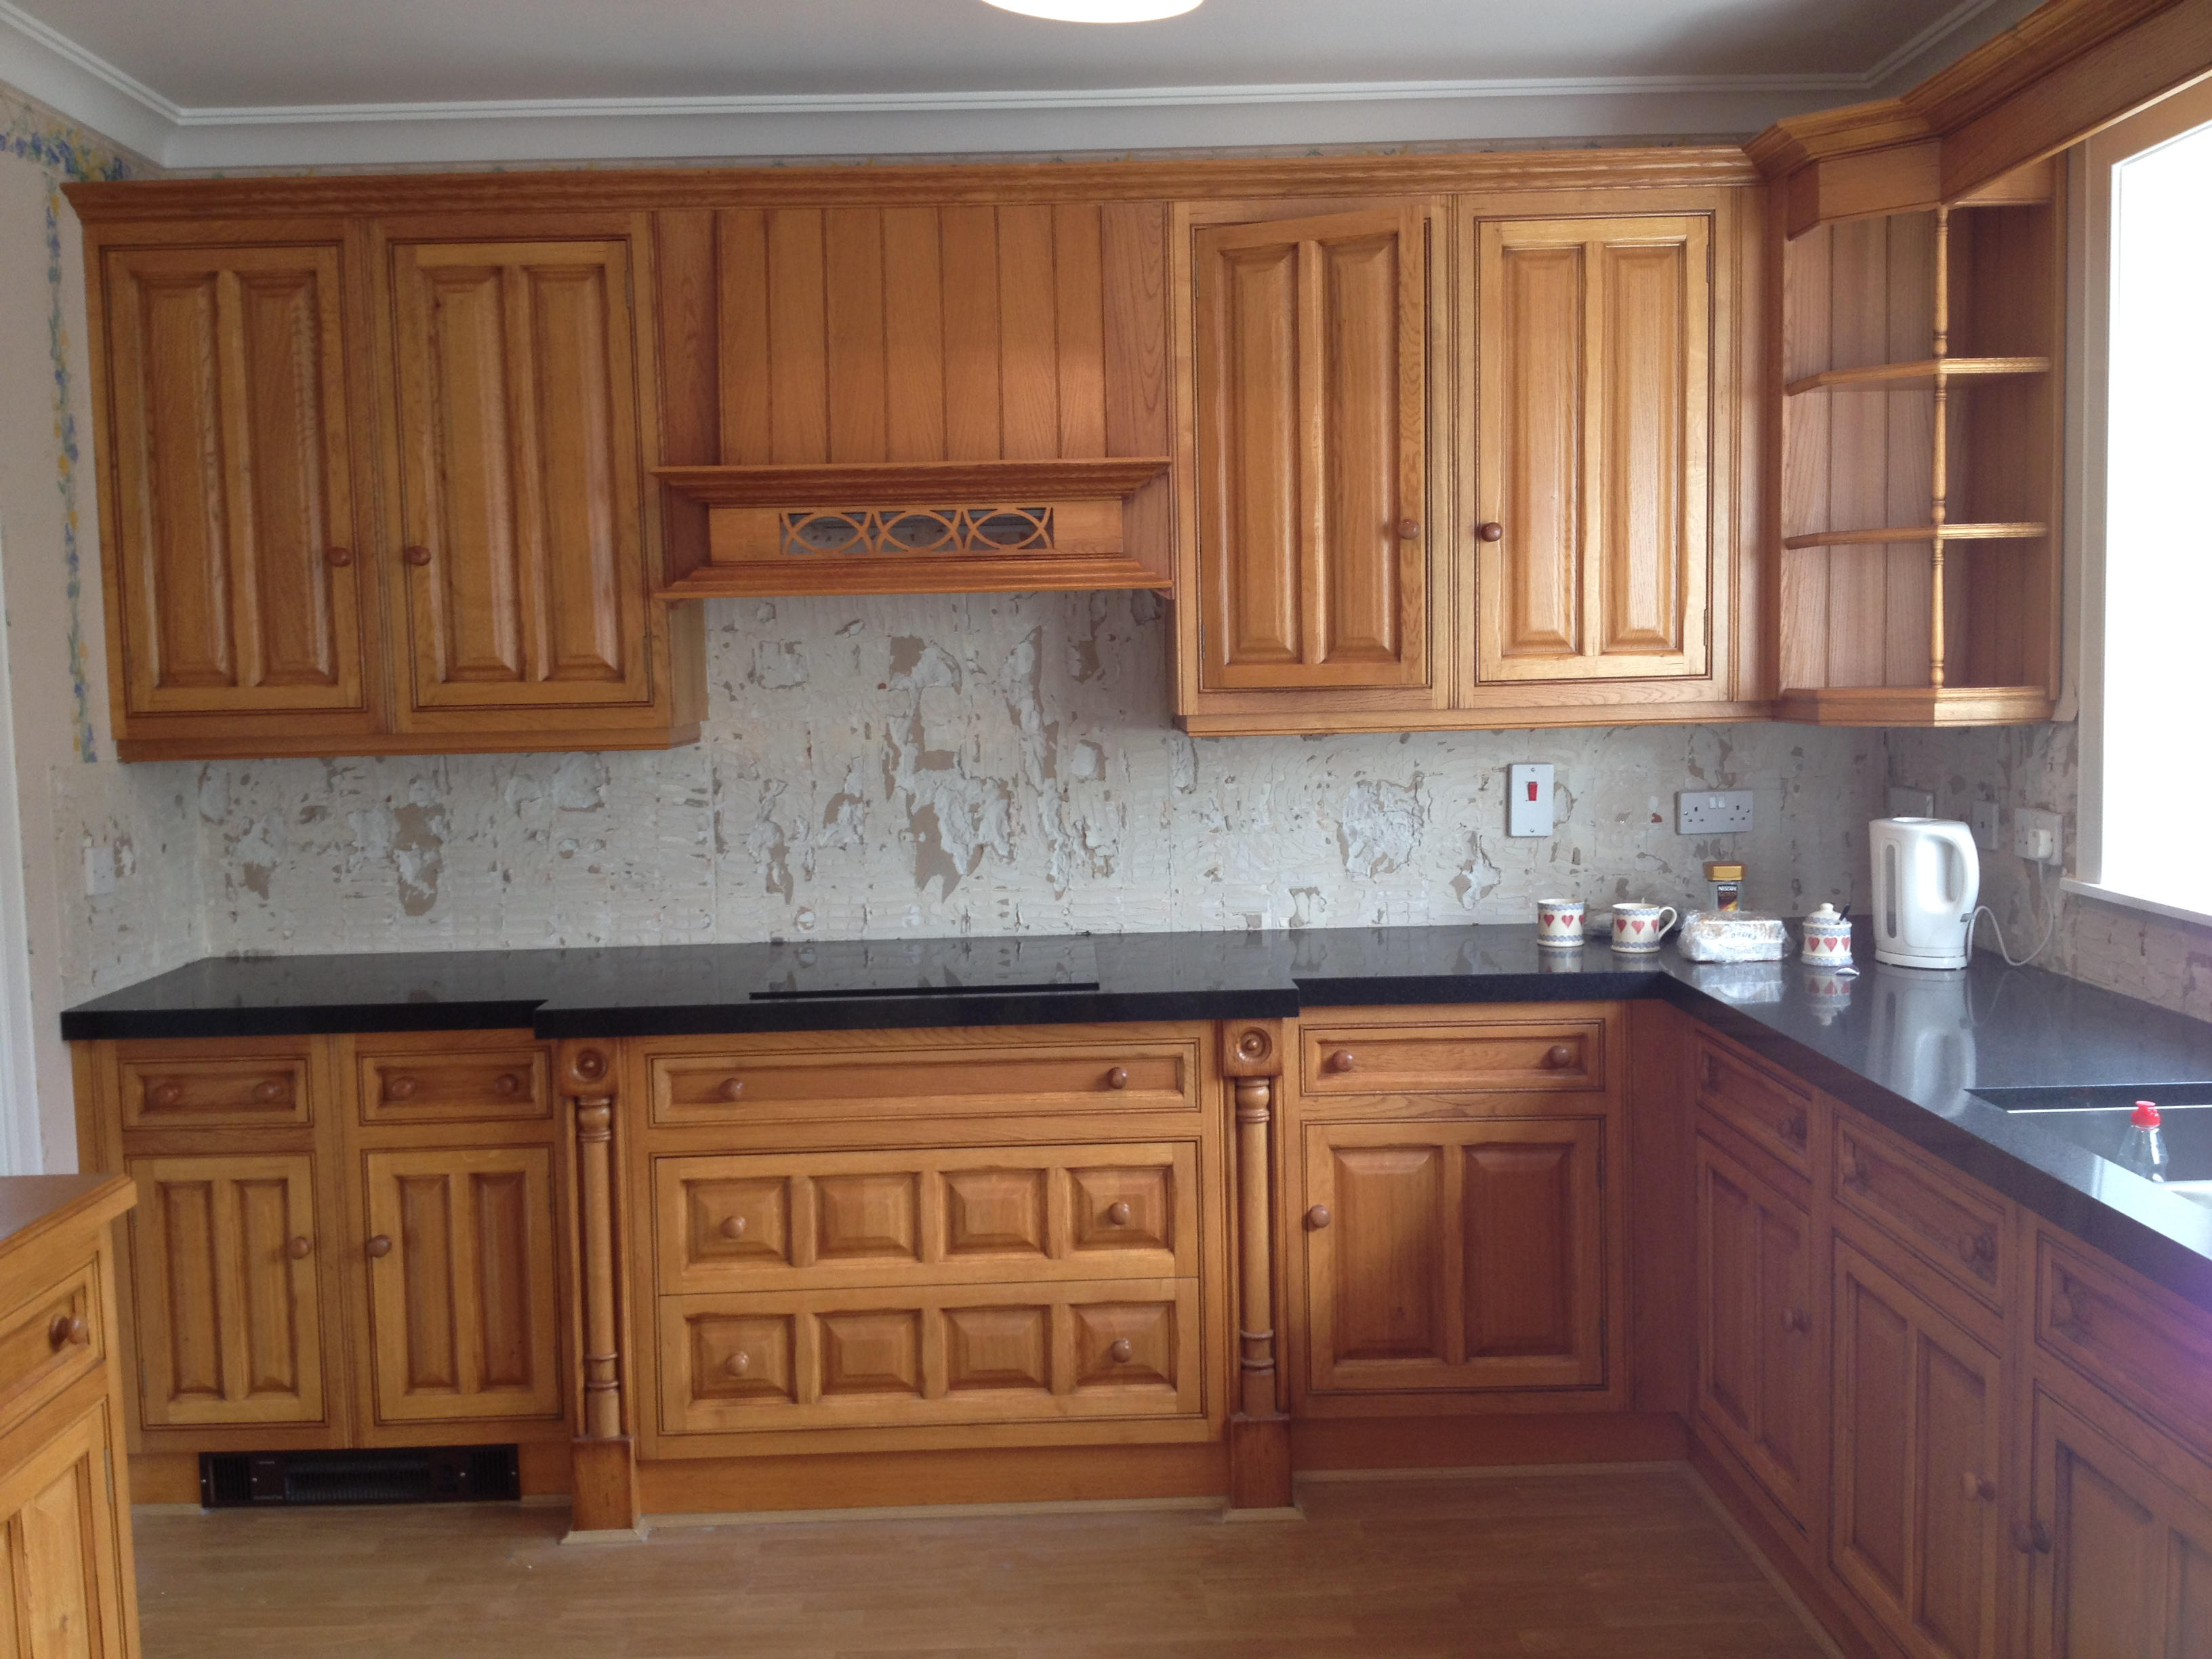 Original wood effect kitchen